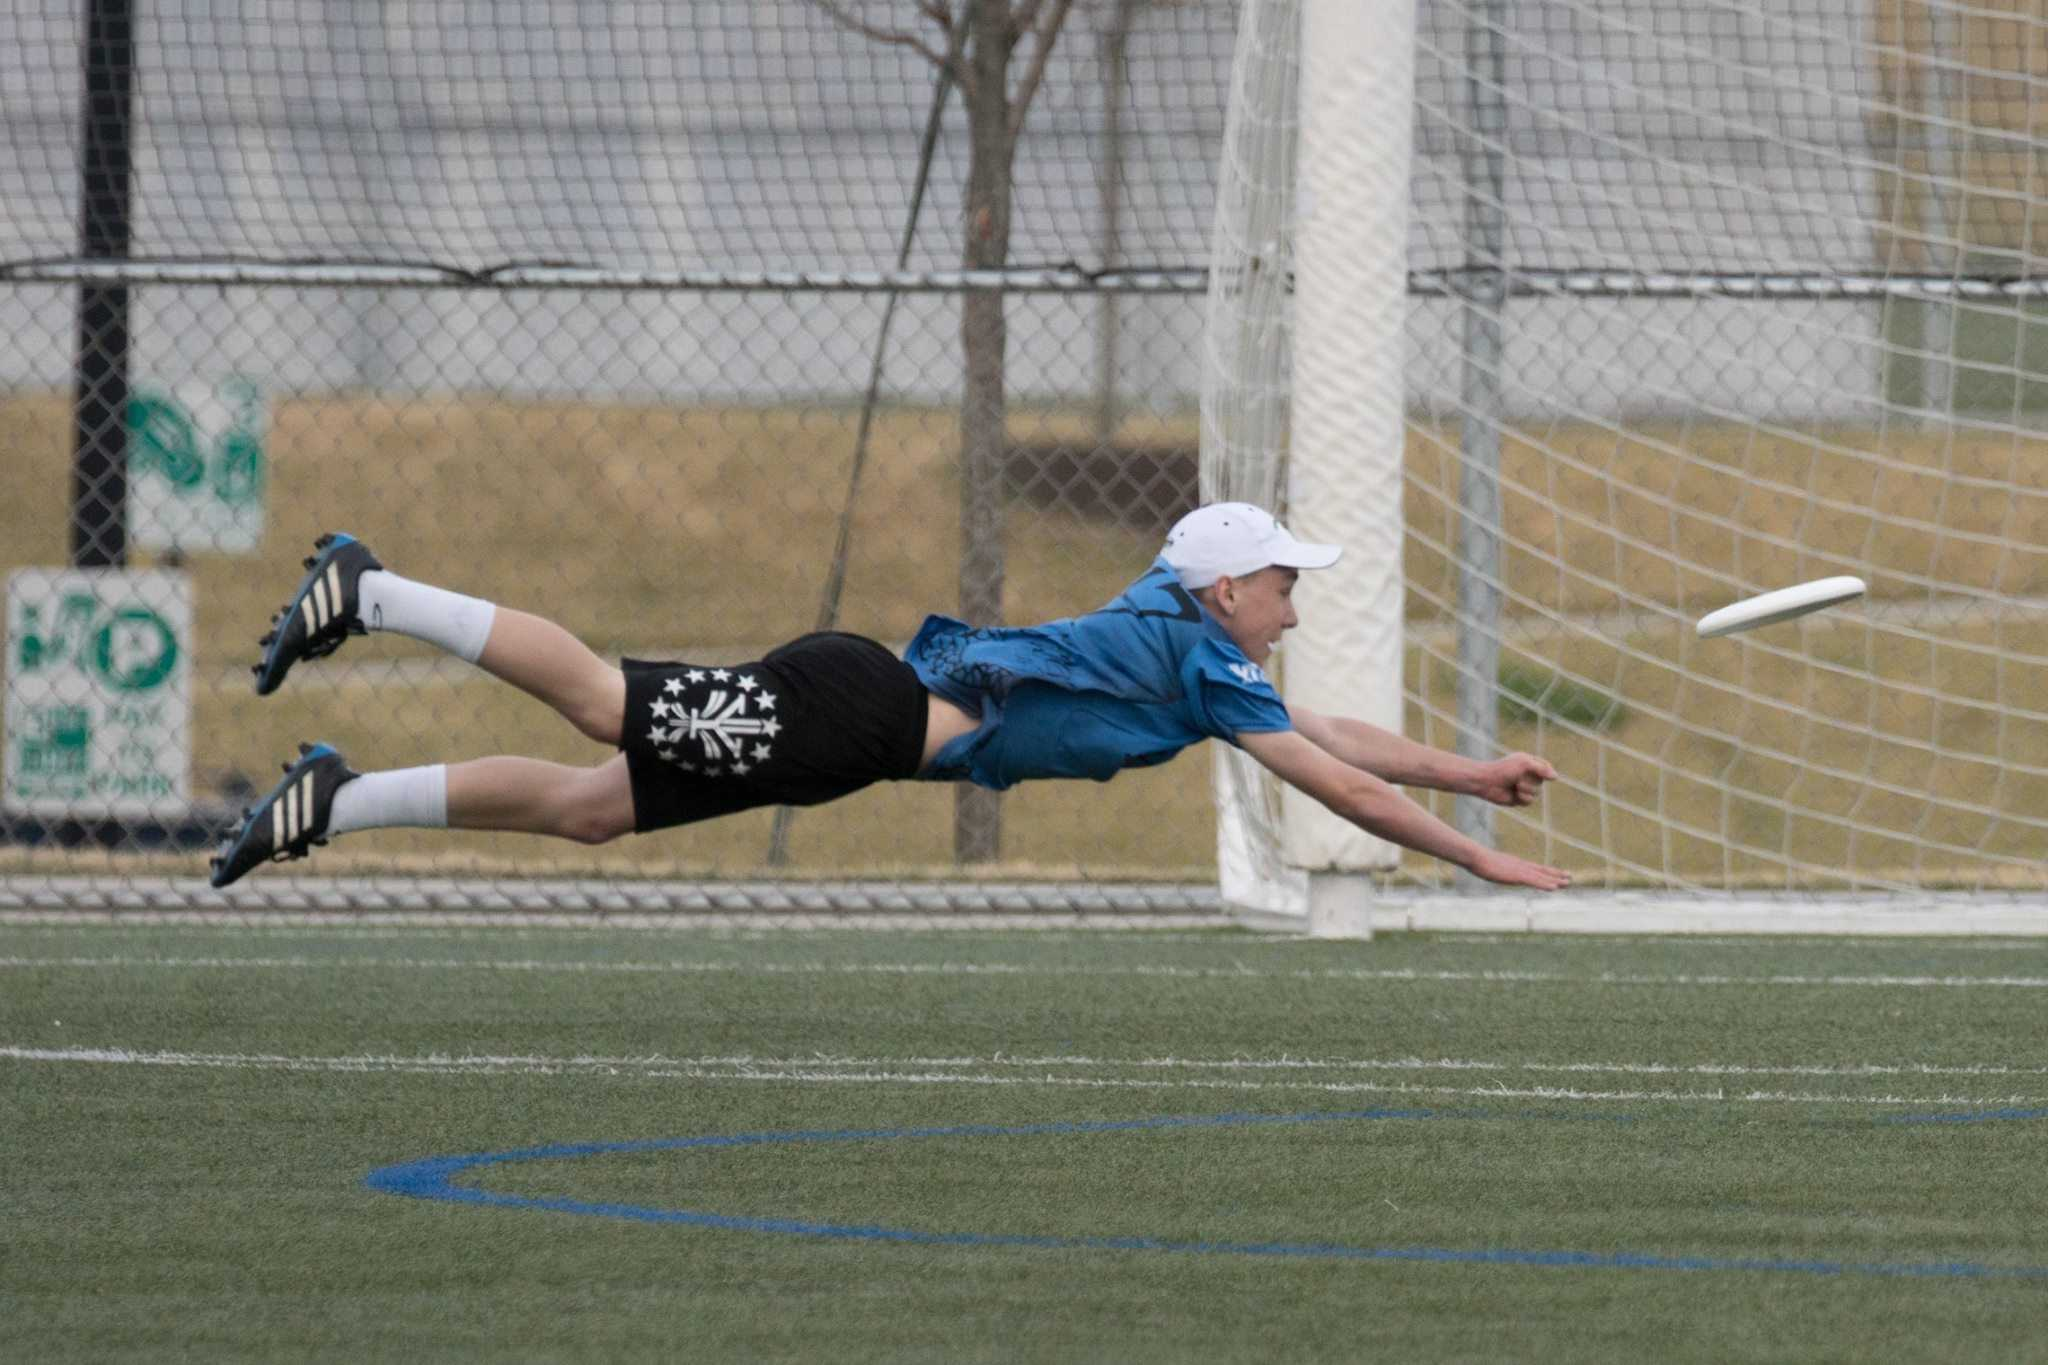 An ultimate frisbee player lays out to make a play